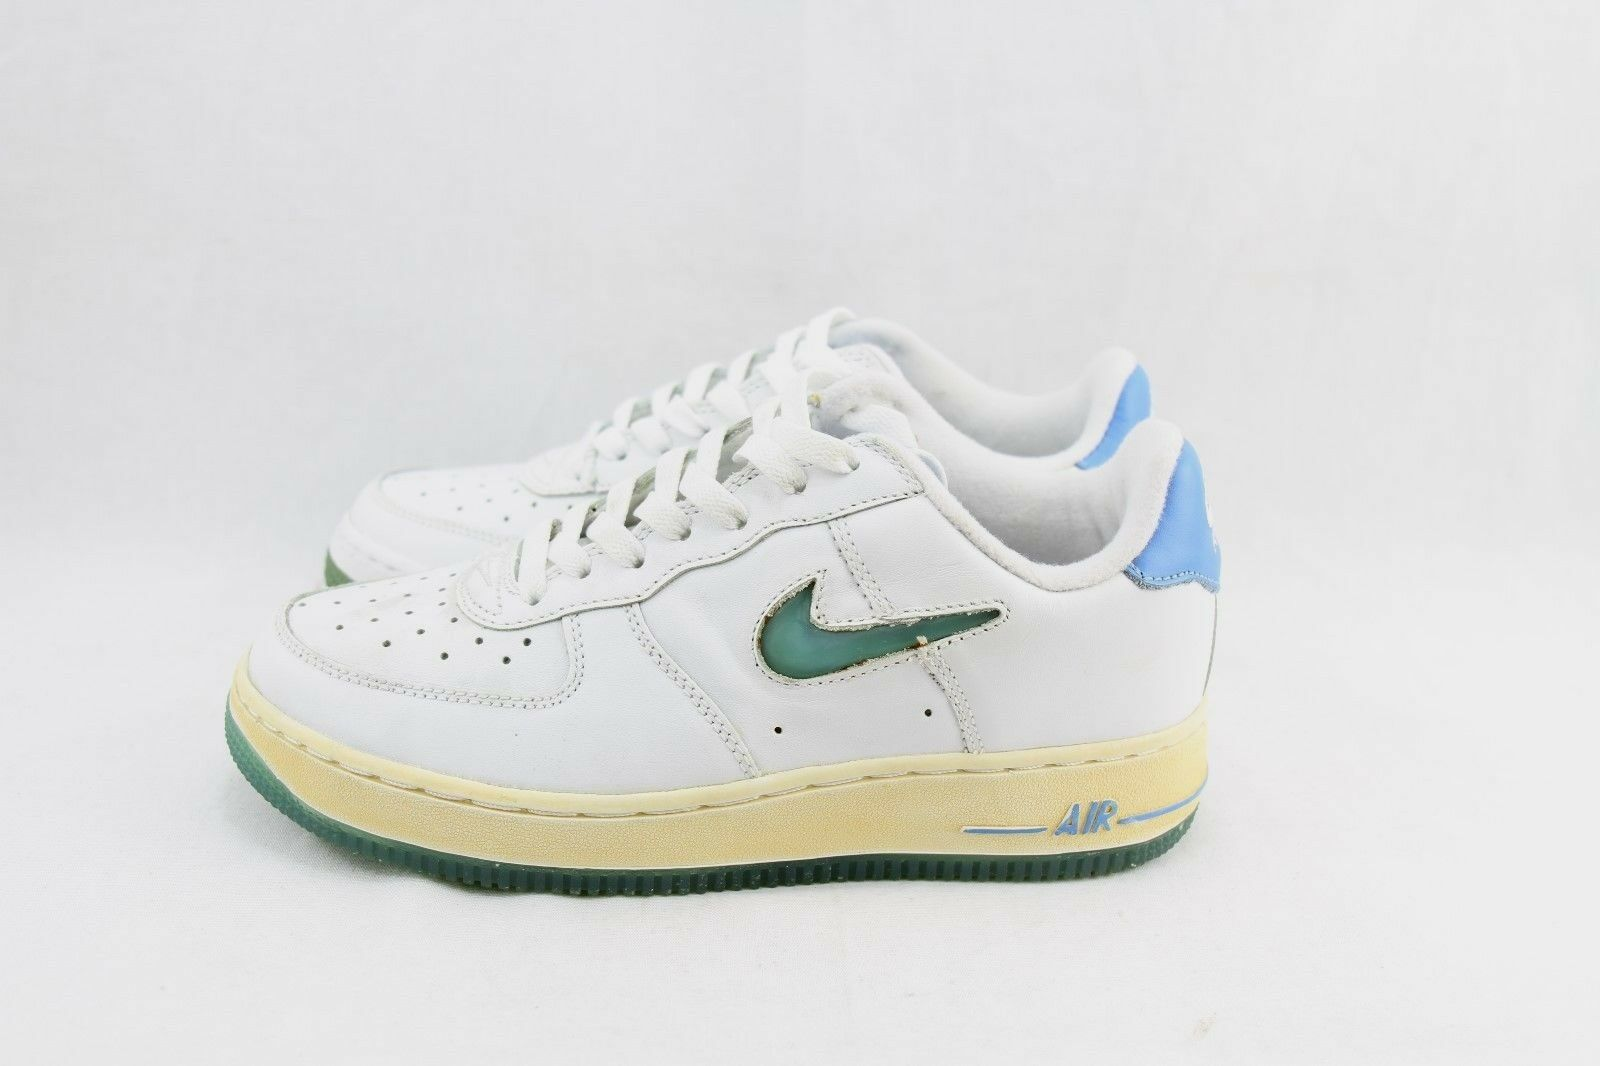 NIKE WMNS AIR FORCE 1 JSW 306511-141 WHITE WHITE WHITE UNIVERSITY blueE DEAD STOCK & YELLOWIN 269bf0